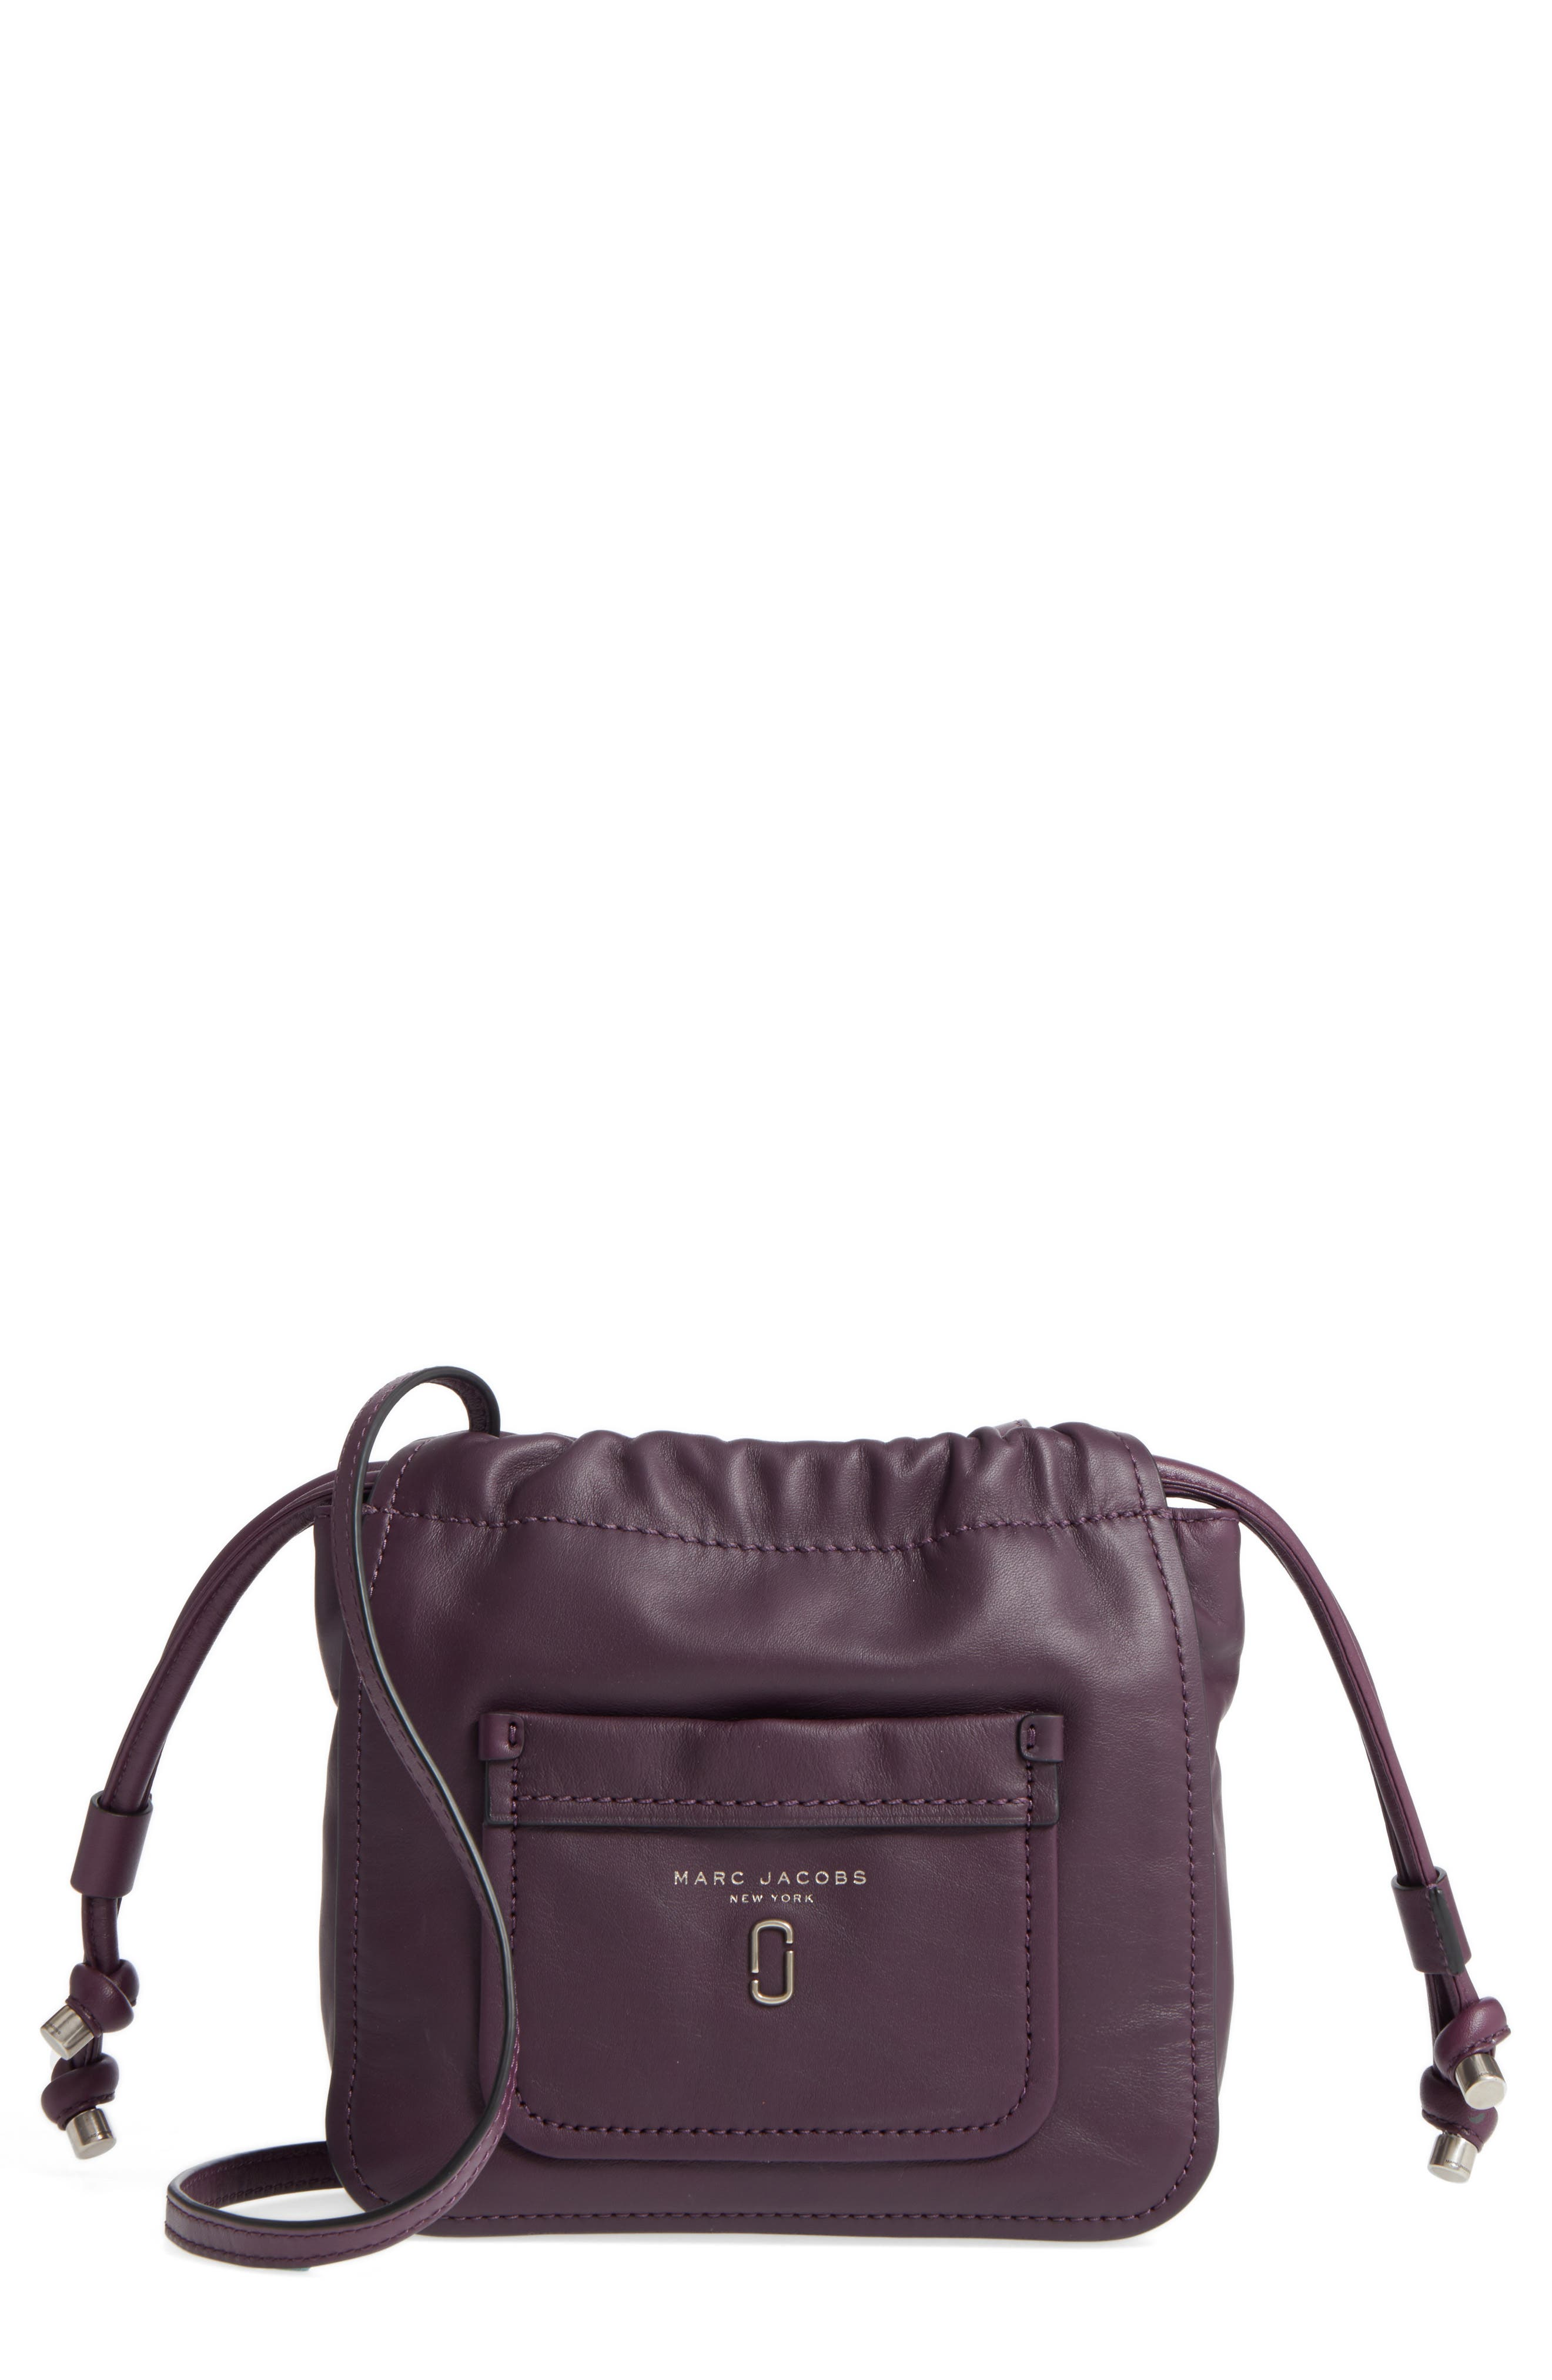 Main Image - MARC JACOBS Tied Up Leather Crossbody Bag